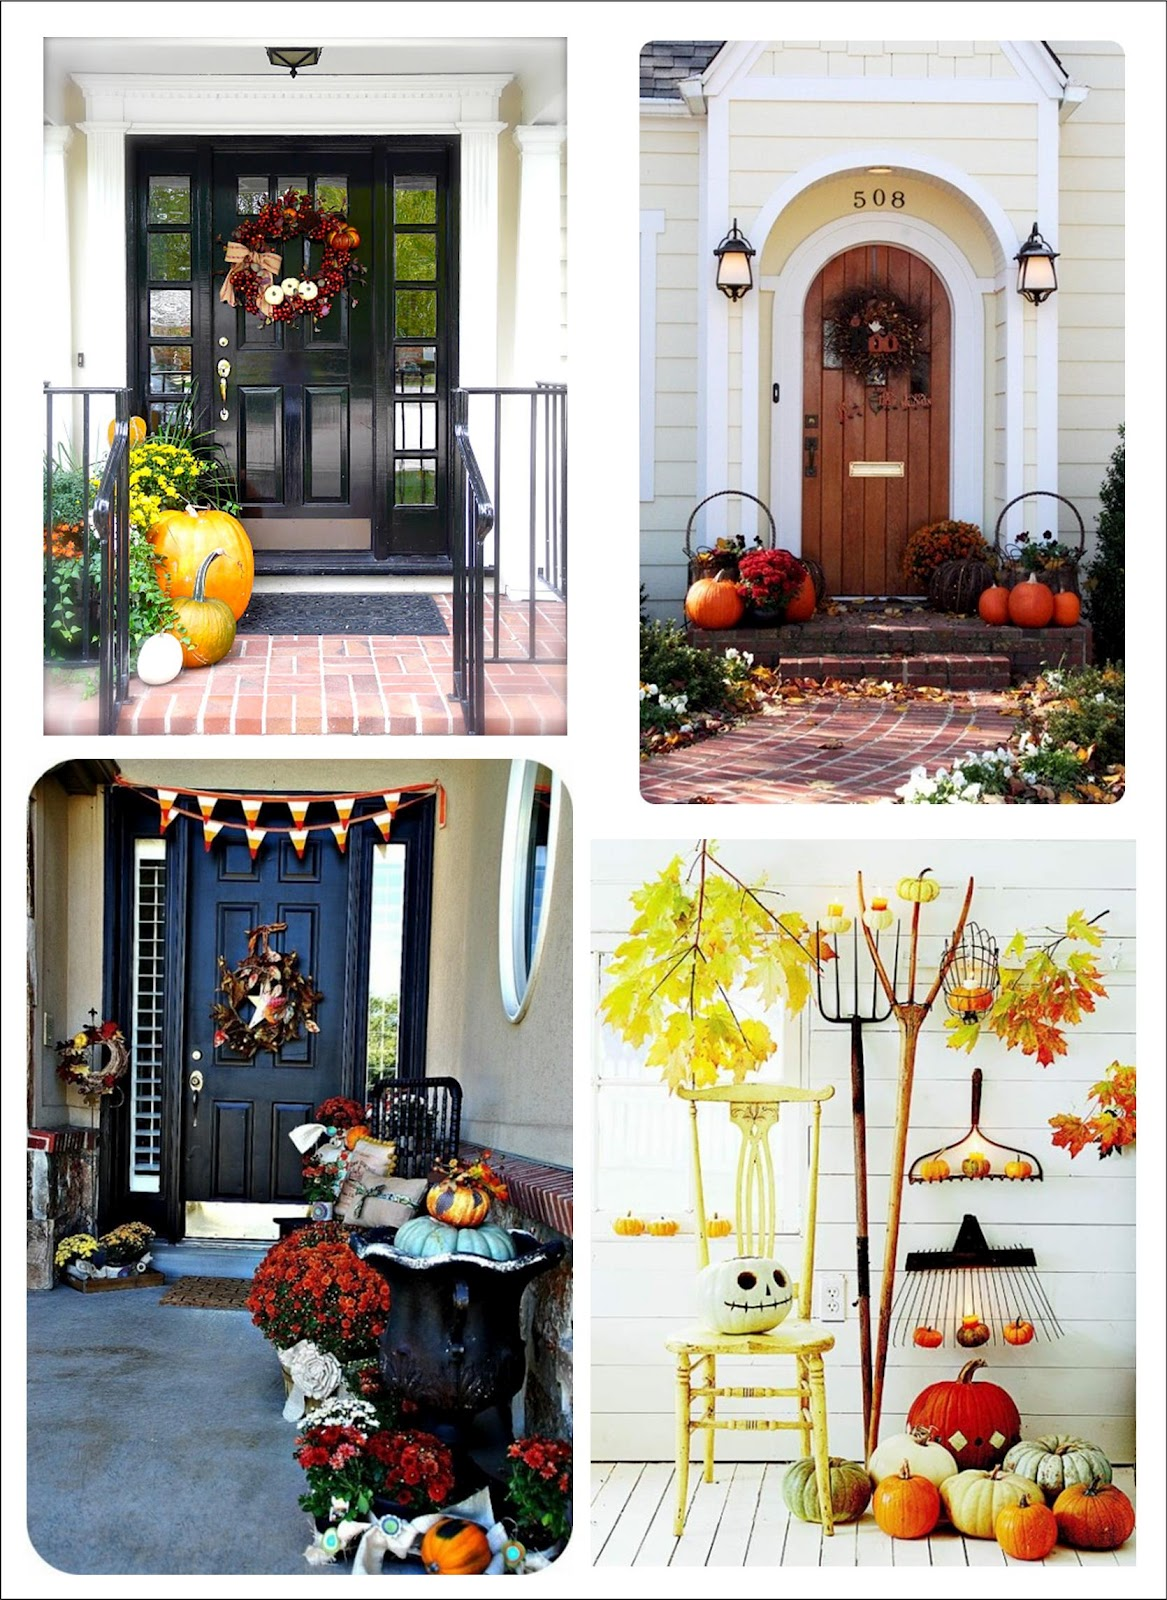 Decorating Ideas For Rentals: It's Written On The Wall: 90 Fall Porch Decorating Ideas